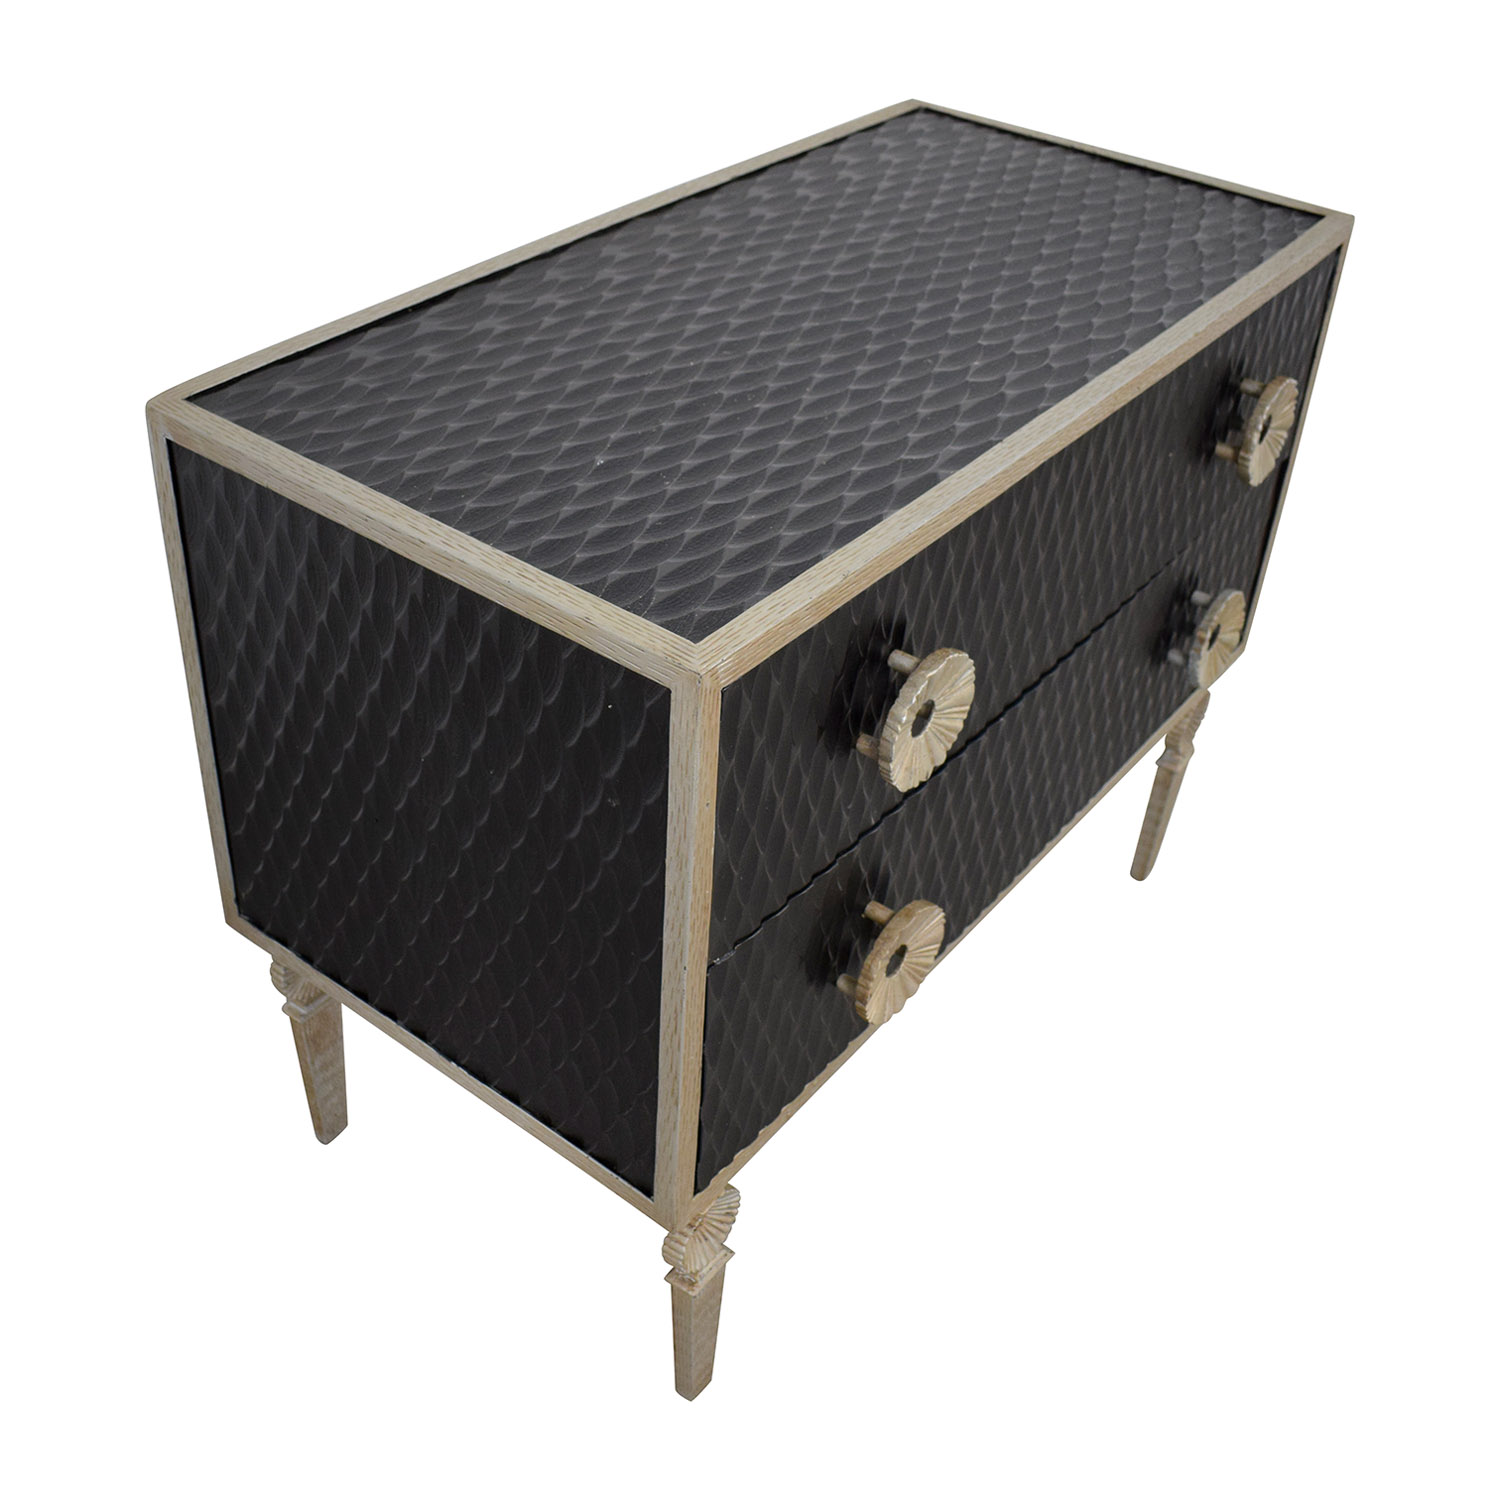 shop Global Views Global Views Artisan Chest online